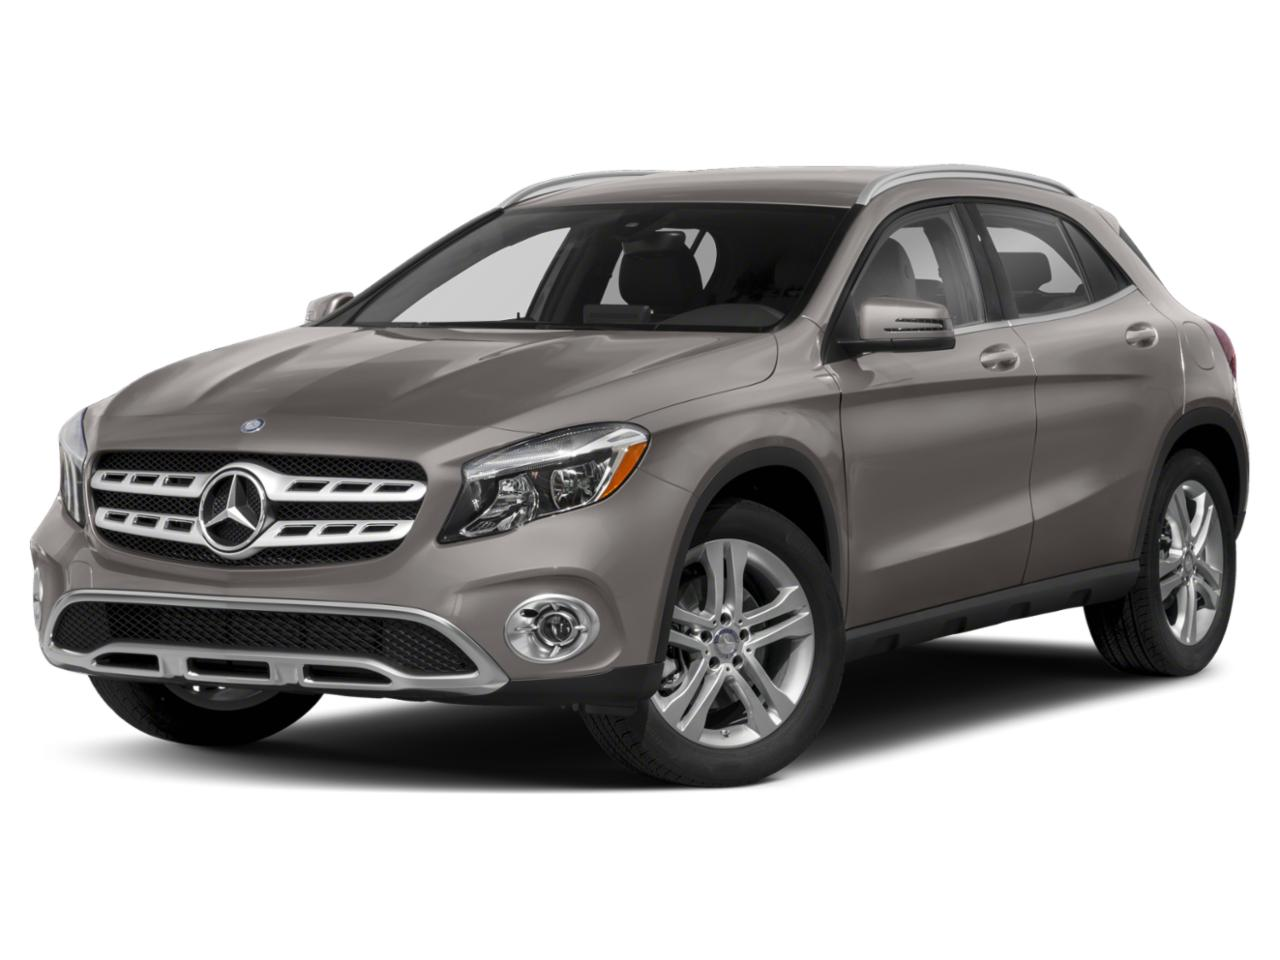 2018 Mercedes-Benz GLA Vehicle Photo in Broussard, LA 70518